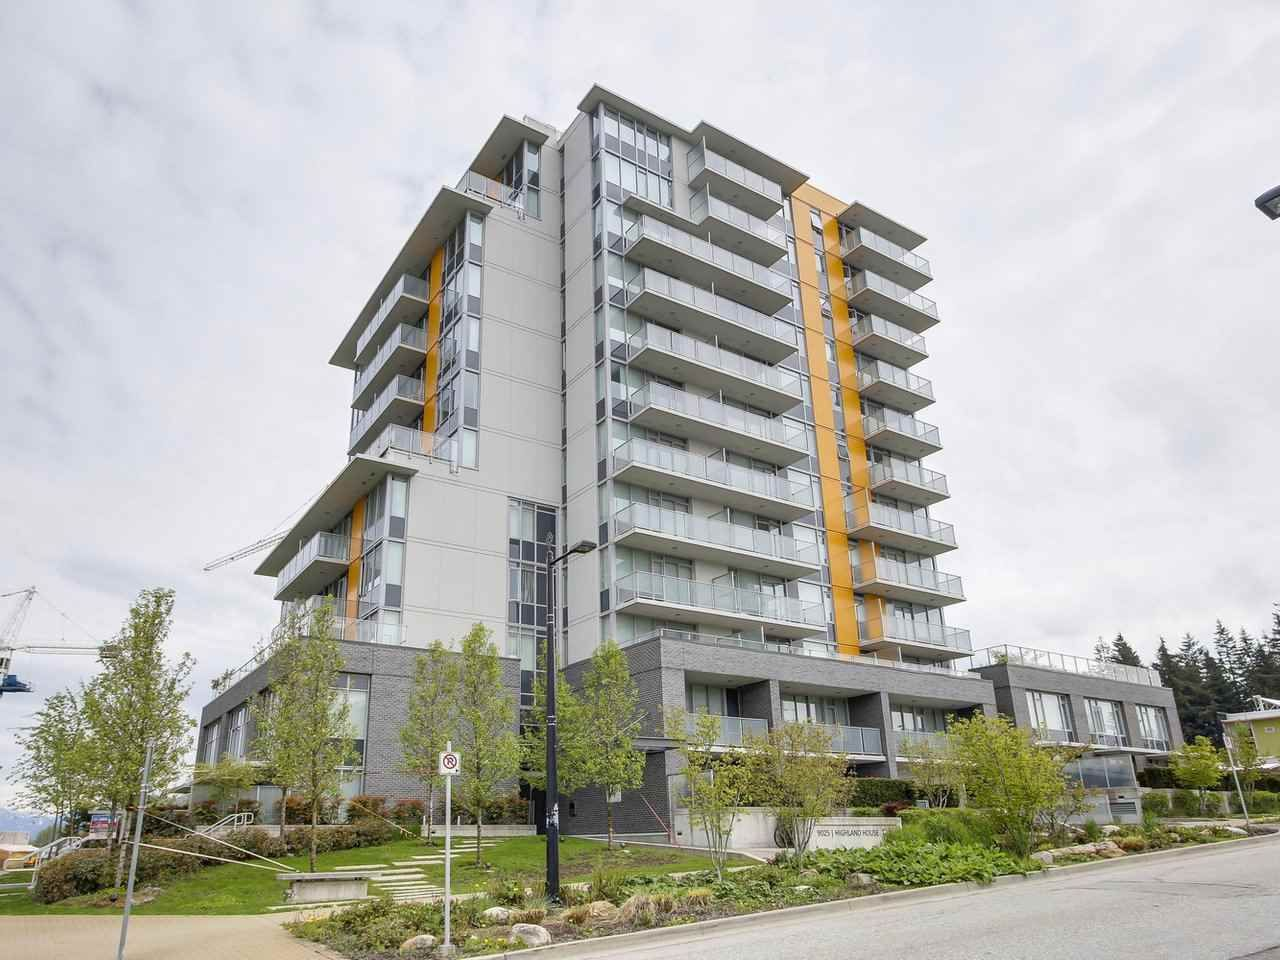 """Main Photo: 112 9025 HIGHLAND Court in Burnaby: Simon Fraser Univer. Townhouse for sale in """"HIGHLAND HOUSE"""" (Burnaby North)  : MLS®# R2163984"""